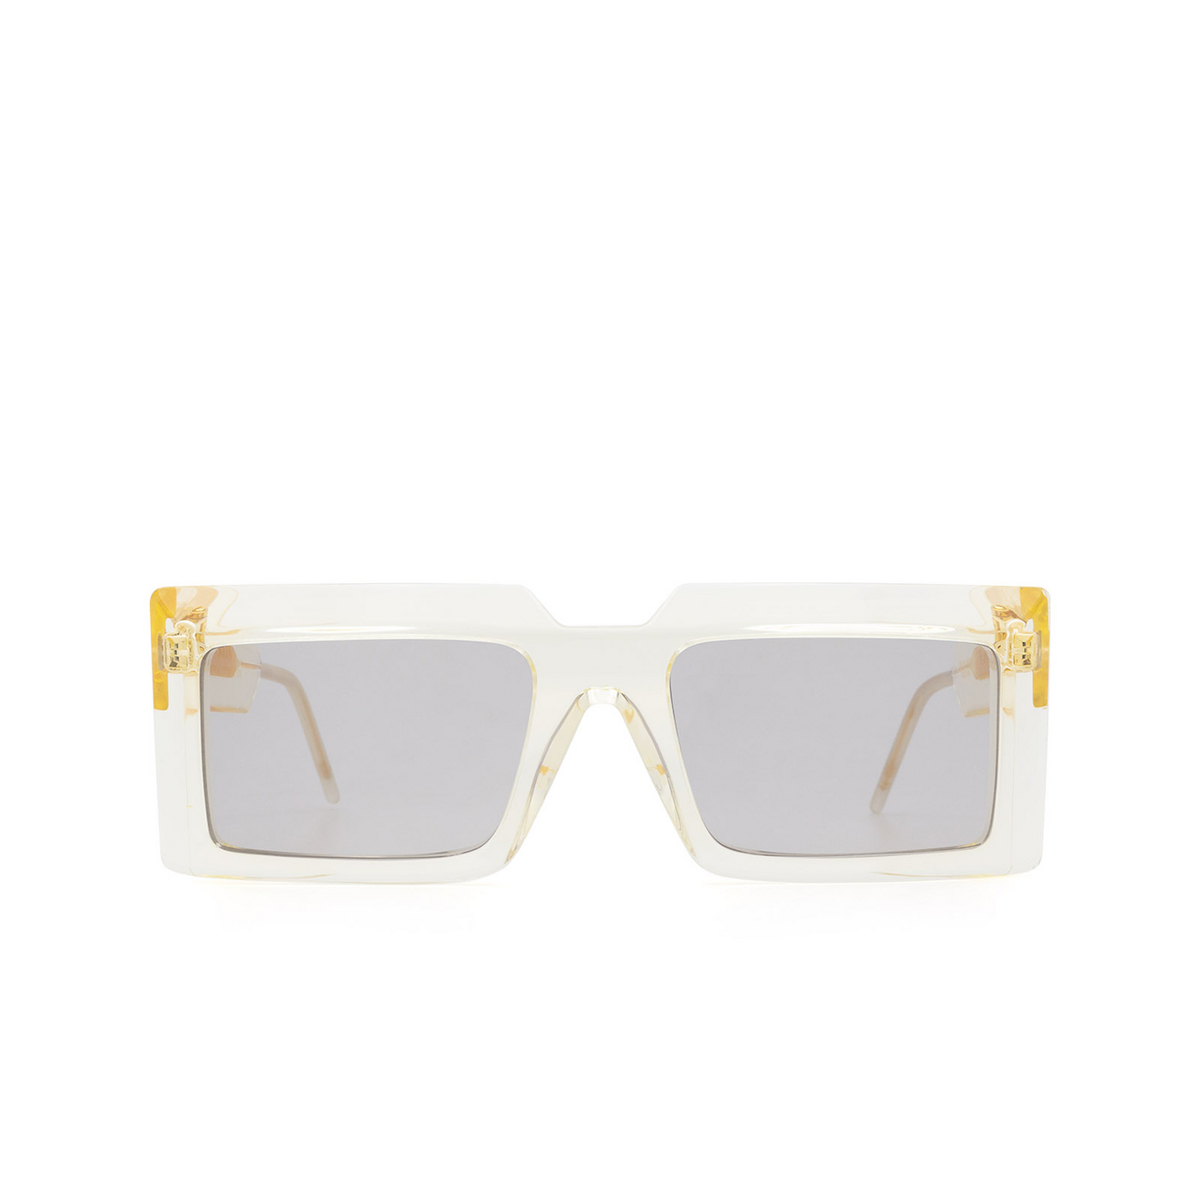 Soya® Rectangle Sunglasses: Ezra color Crystal Light Yellow Cly-lg - front view.